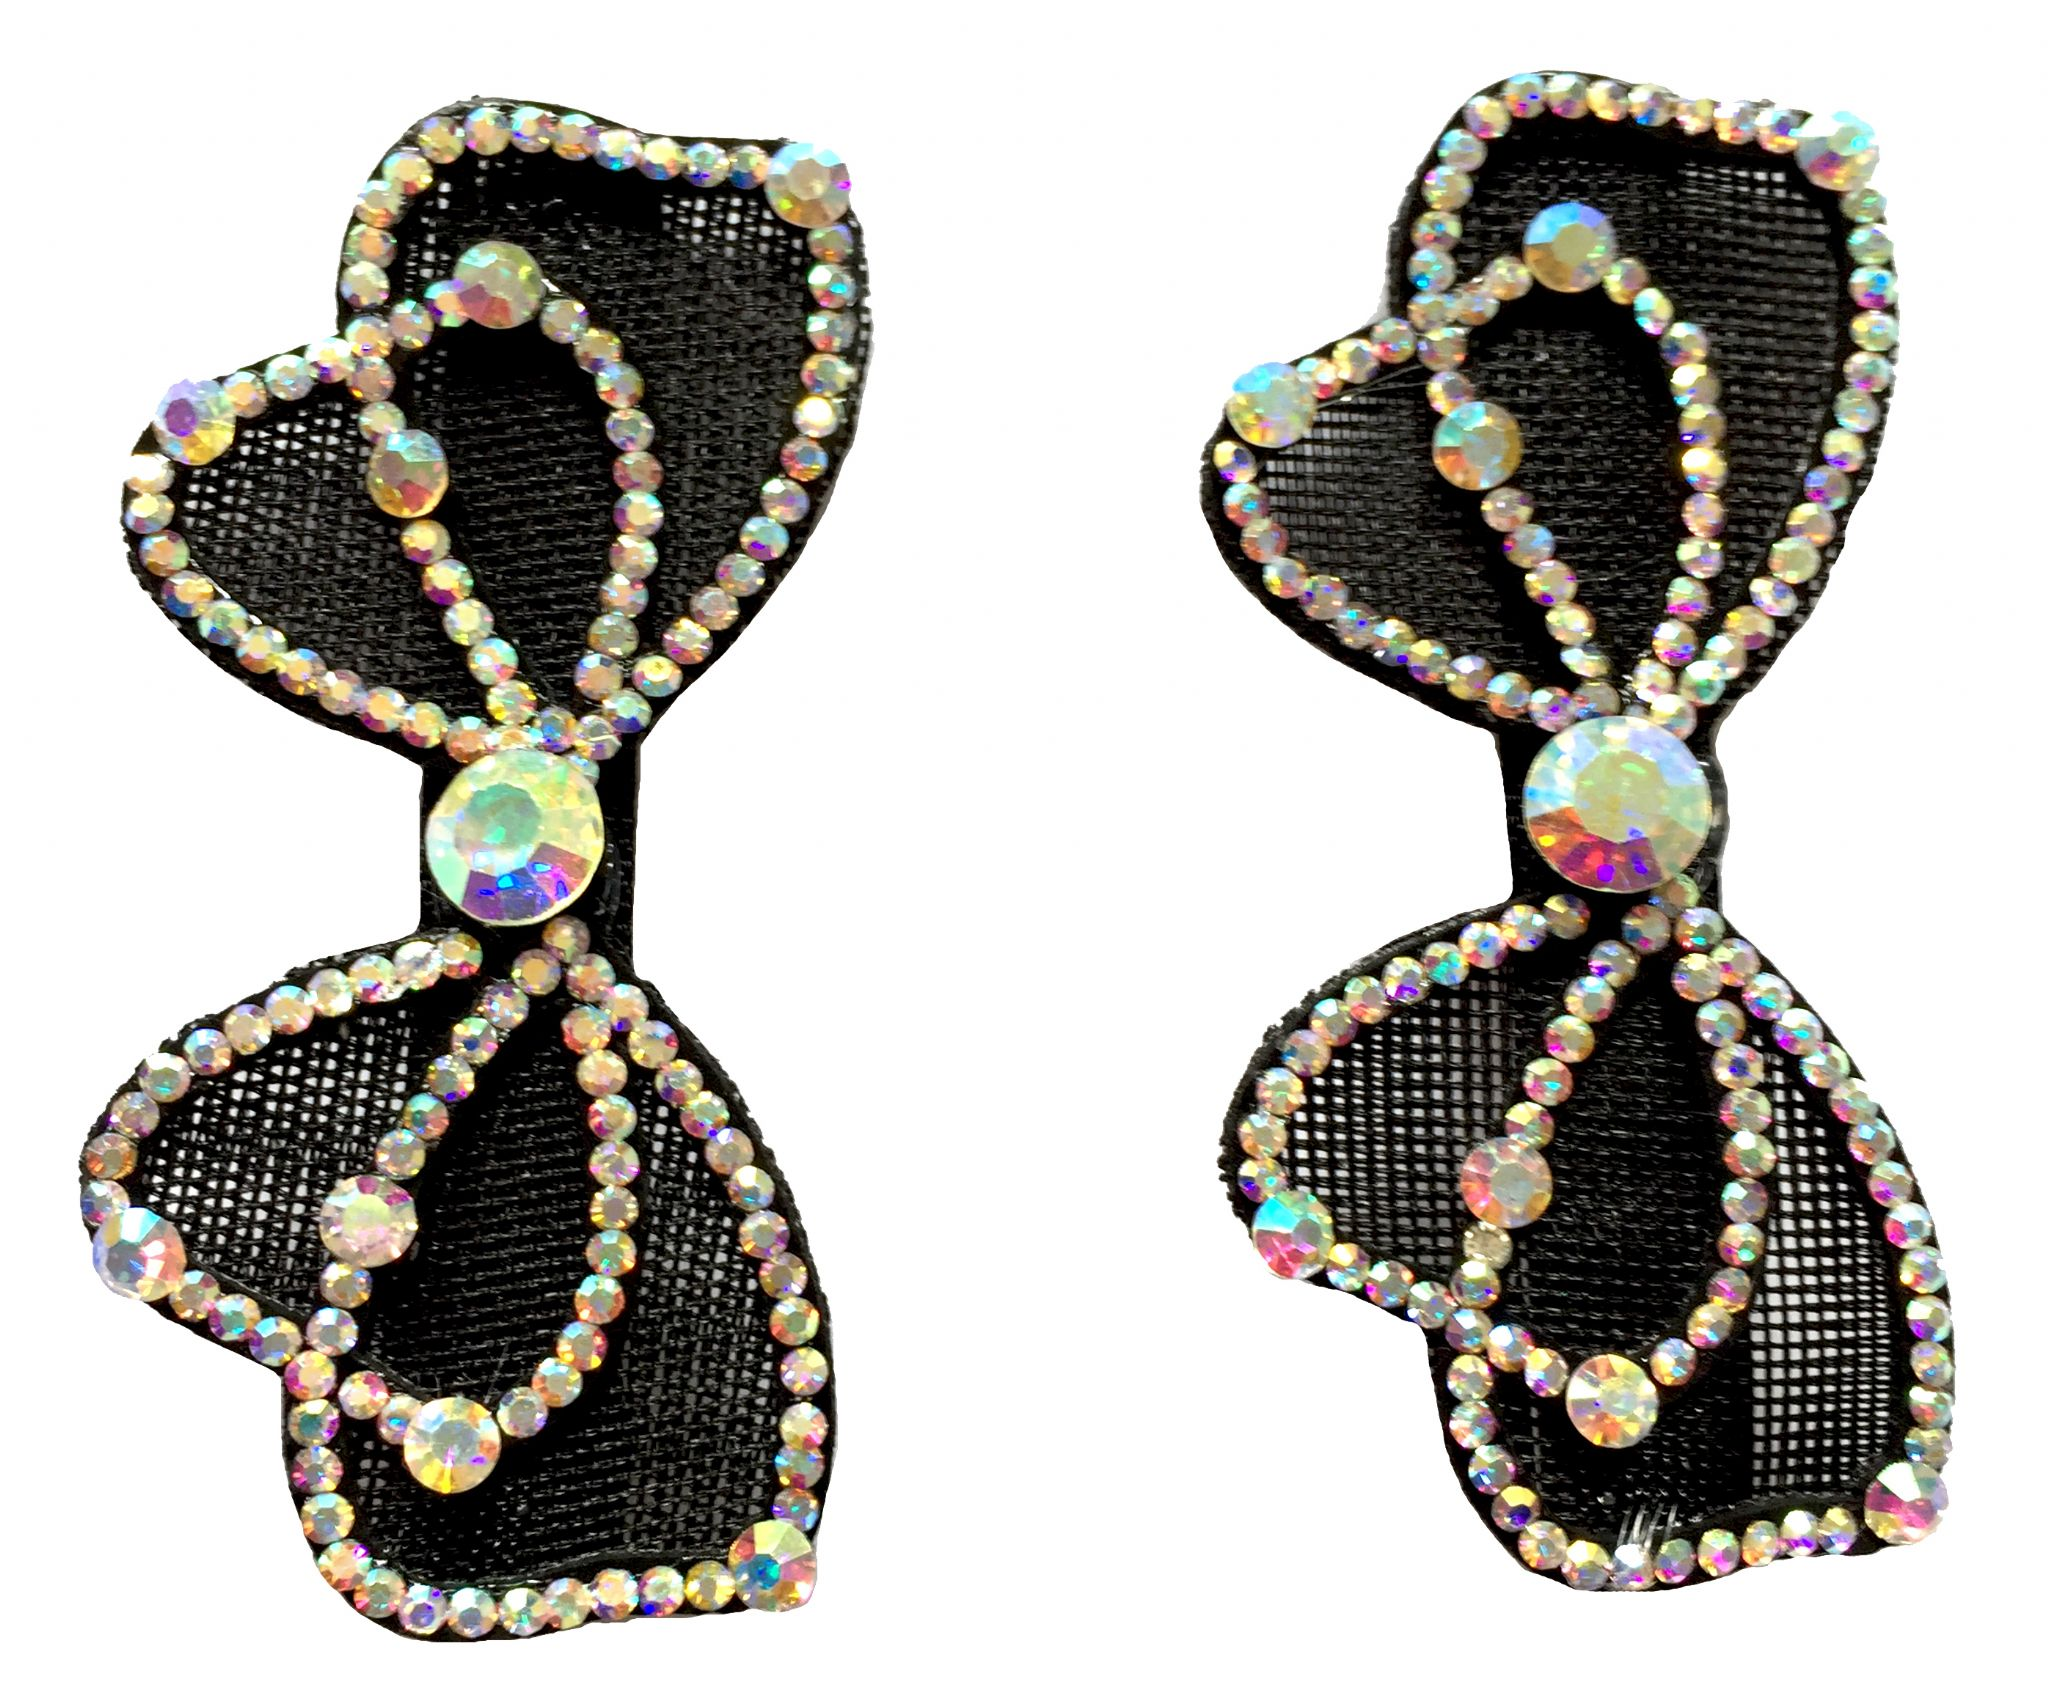 http://www.conmigolondon.co.uk/ekmps/shops/conmigo/images/1.-al0040-eye-catching-black-bow-with-colourful-sequin-hair-slids-2-pieces-%5B2%5D-15478-p.jpg